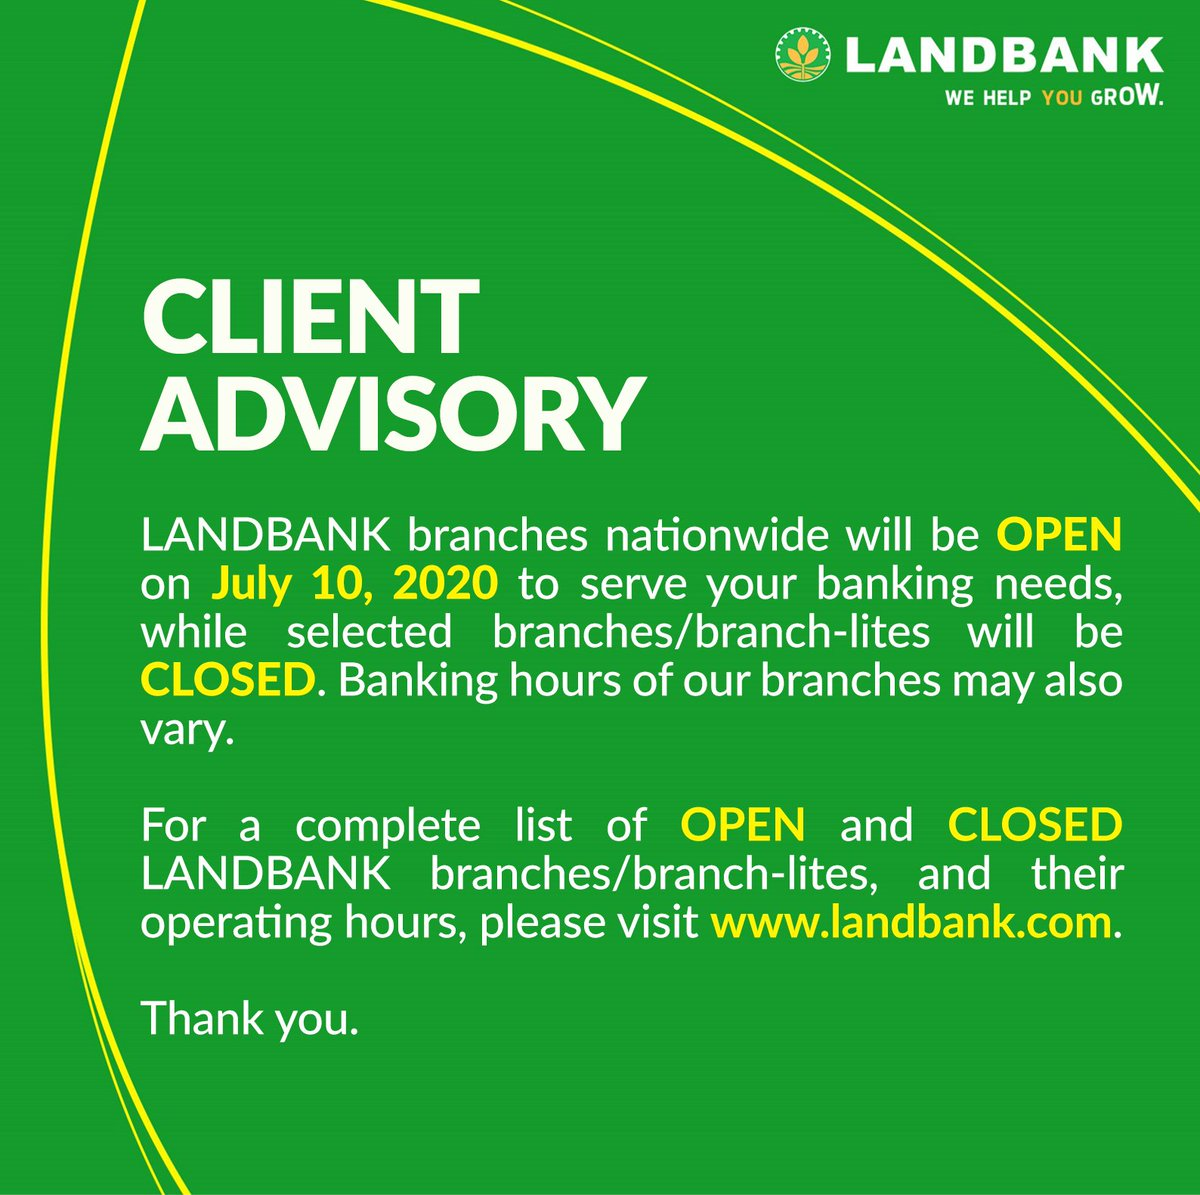 #LANDBANKClientAdvisory  To see the full list of OPEN branches, visit https://t.co/8xUbmd4ETG  To see the full list of CLOSED branches, visit https://t.co/CSXQYJT2Dk https://t.co/WyjzKvna0U